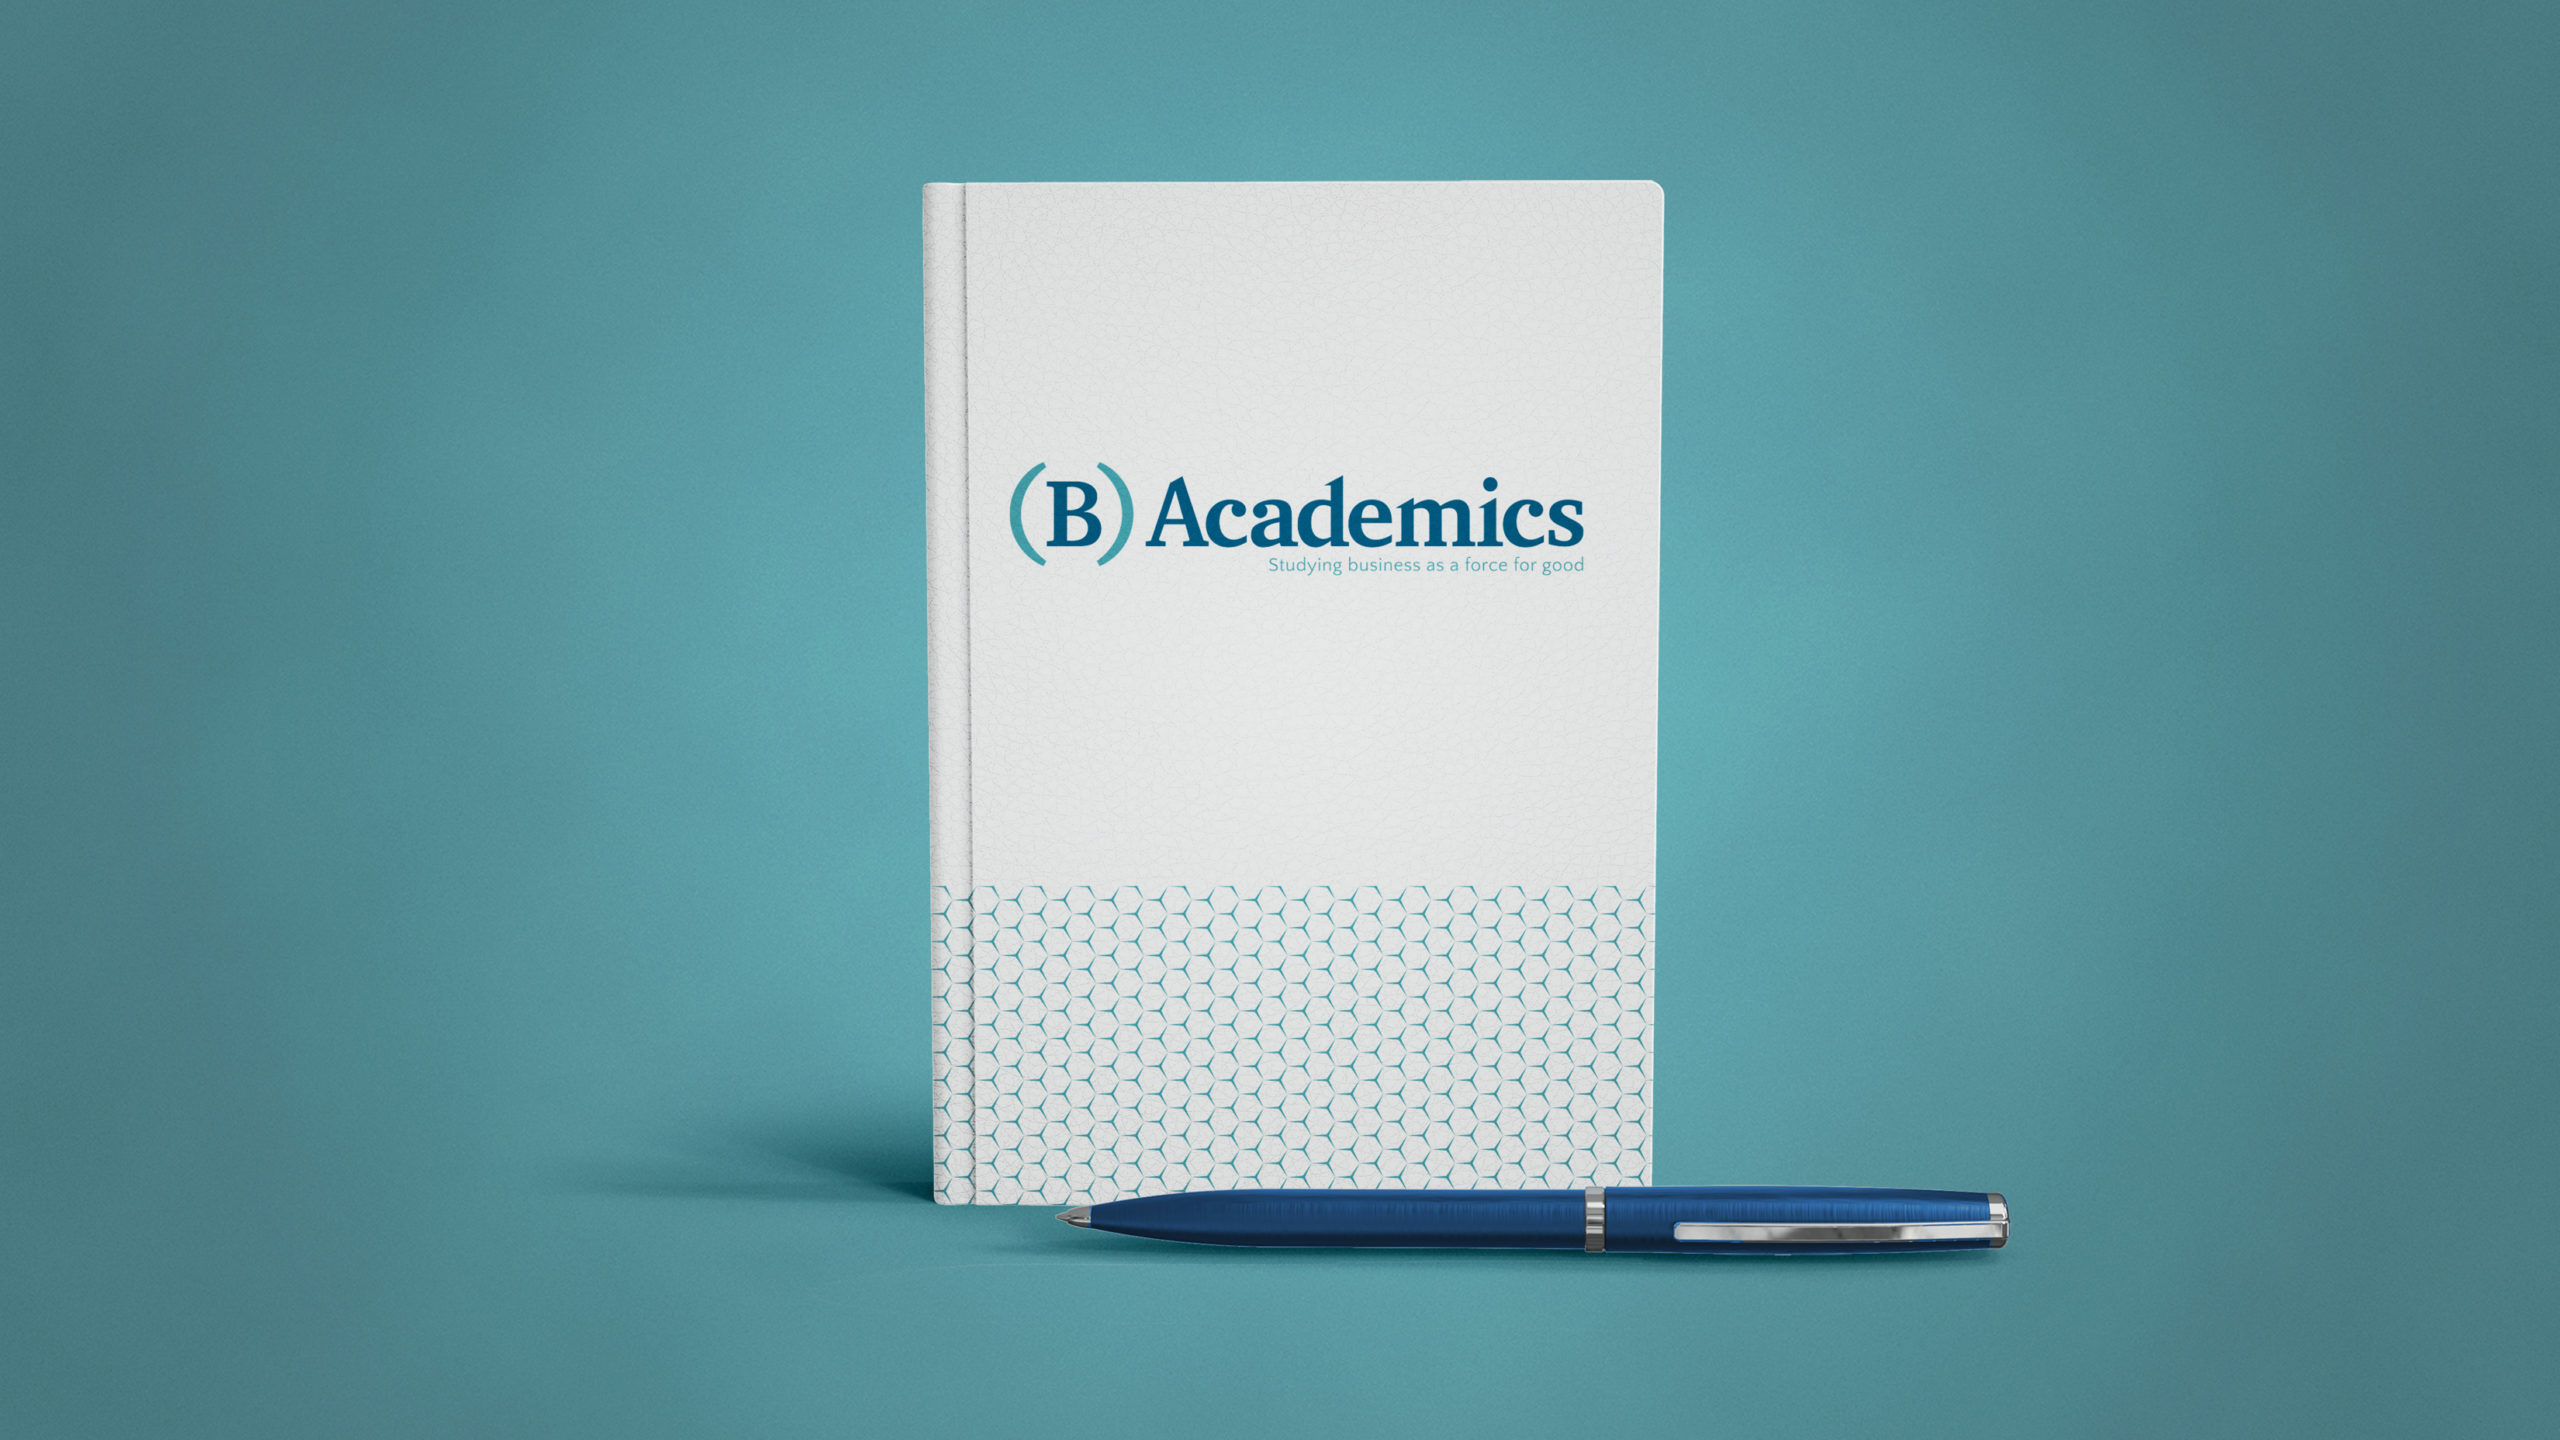 Membership Notebook Design for B Academics